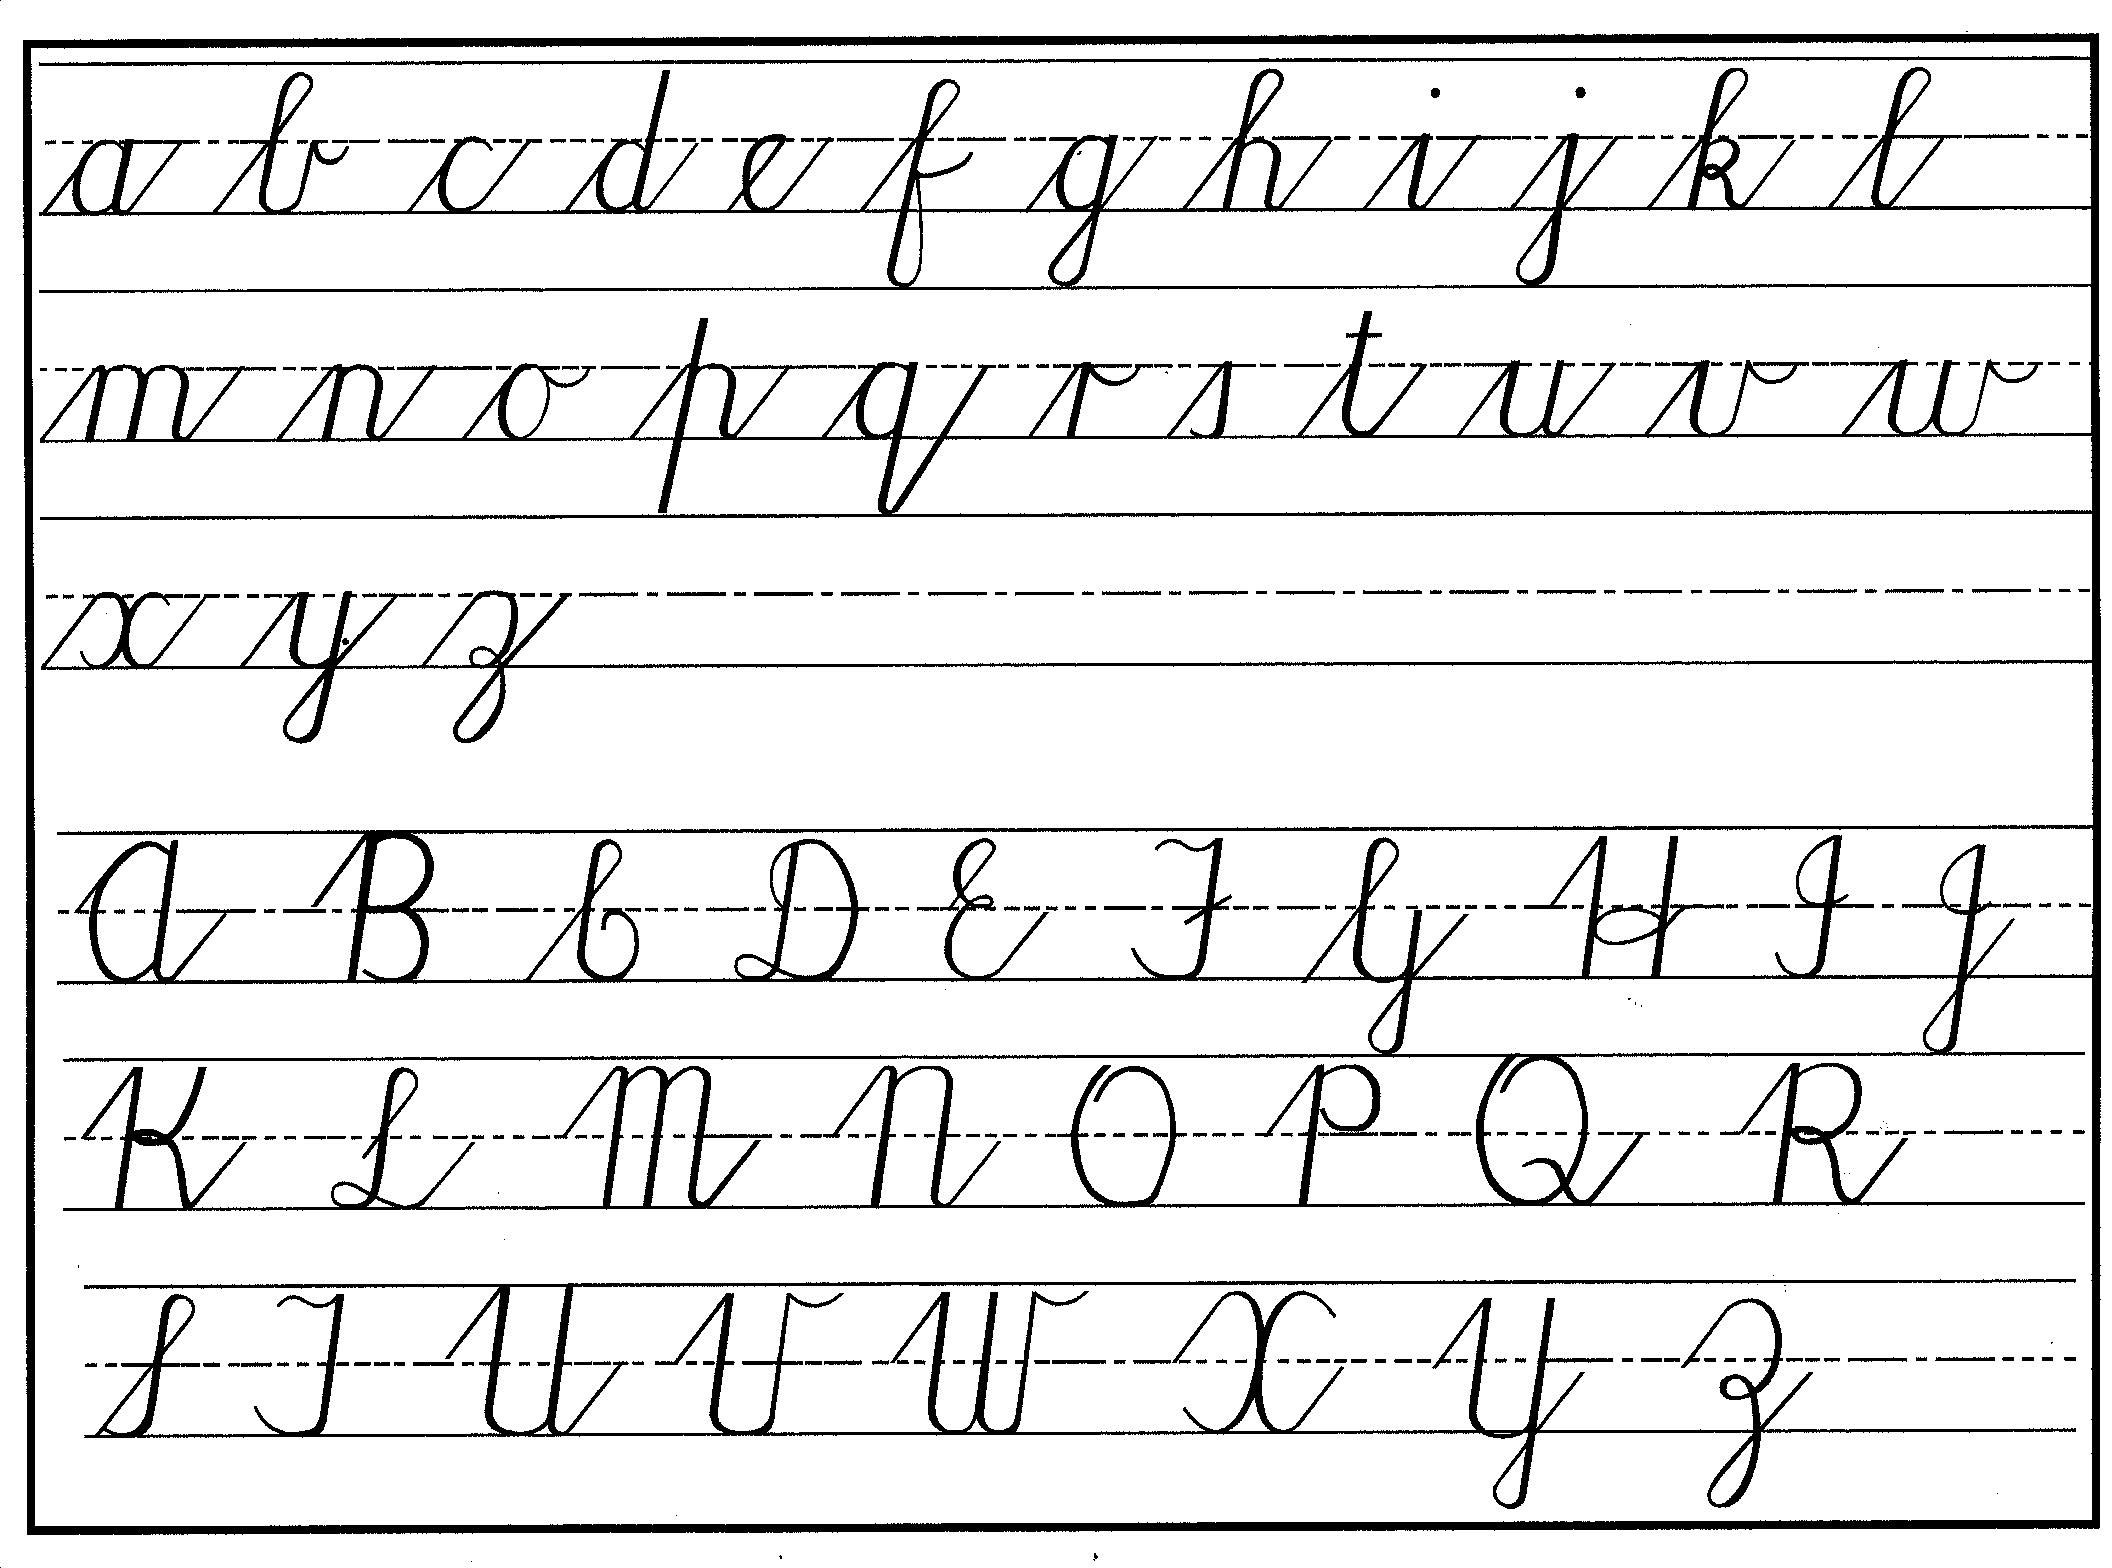 Worksheets Images Of All Alphabet Cursive Letter cursive handwriting step by for beginners chart alphabet